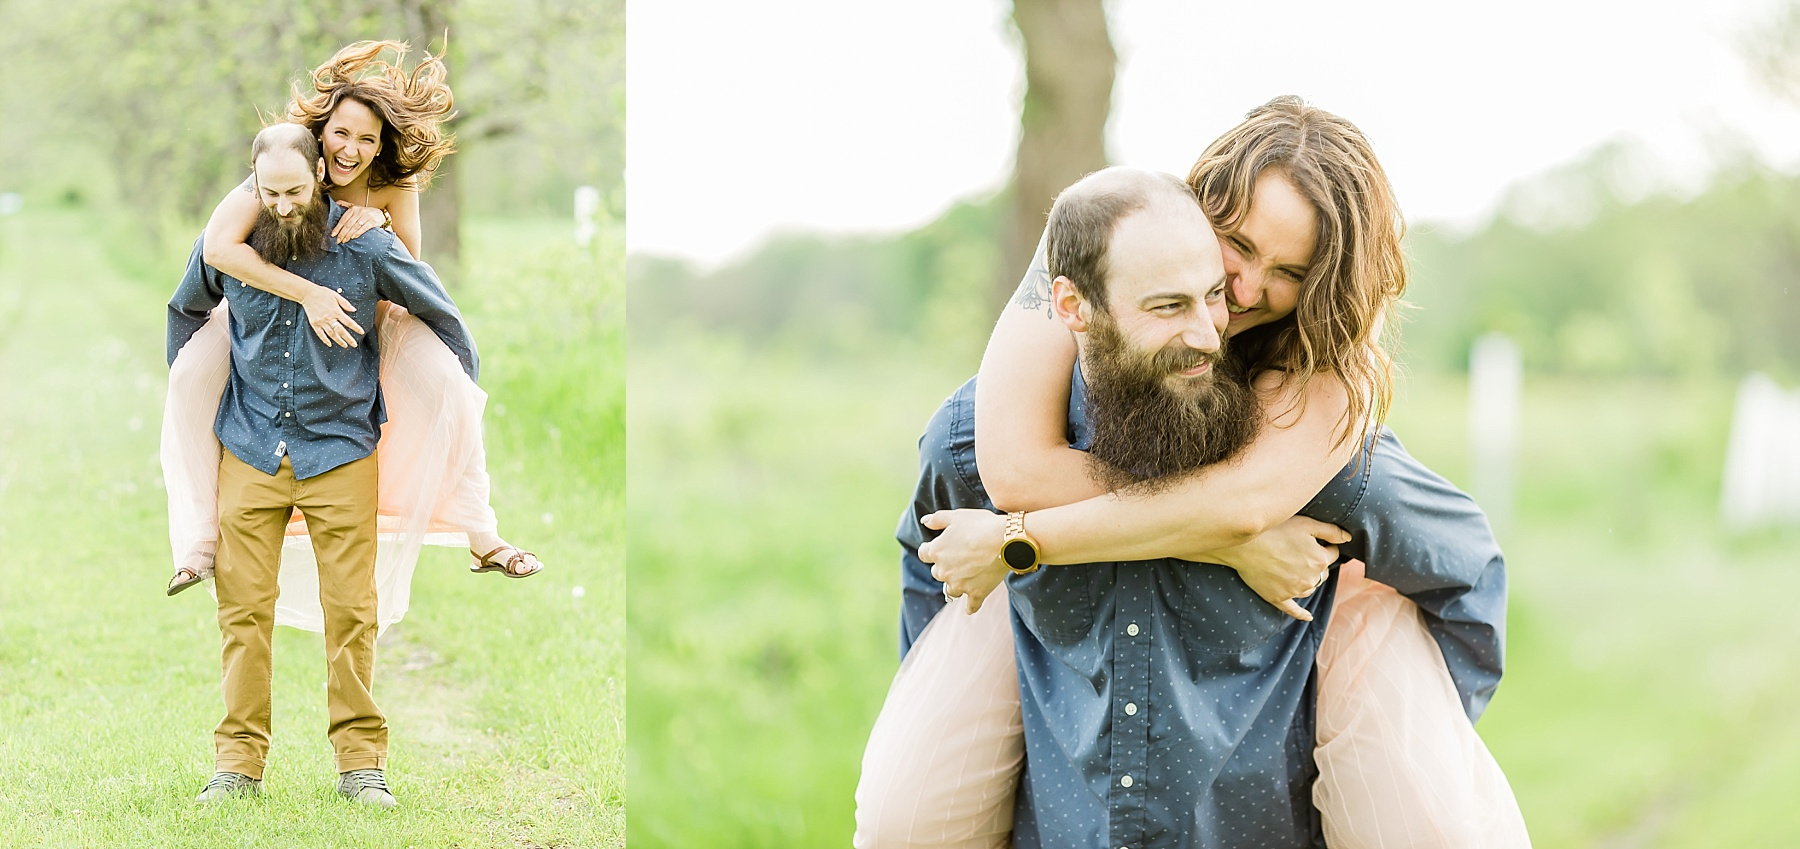 monticello indiana wedding engagement photography simple adventure weird_0036.jpg